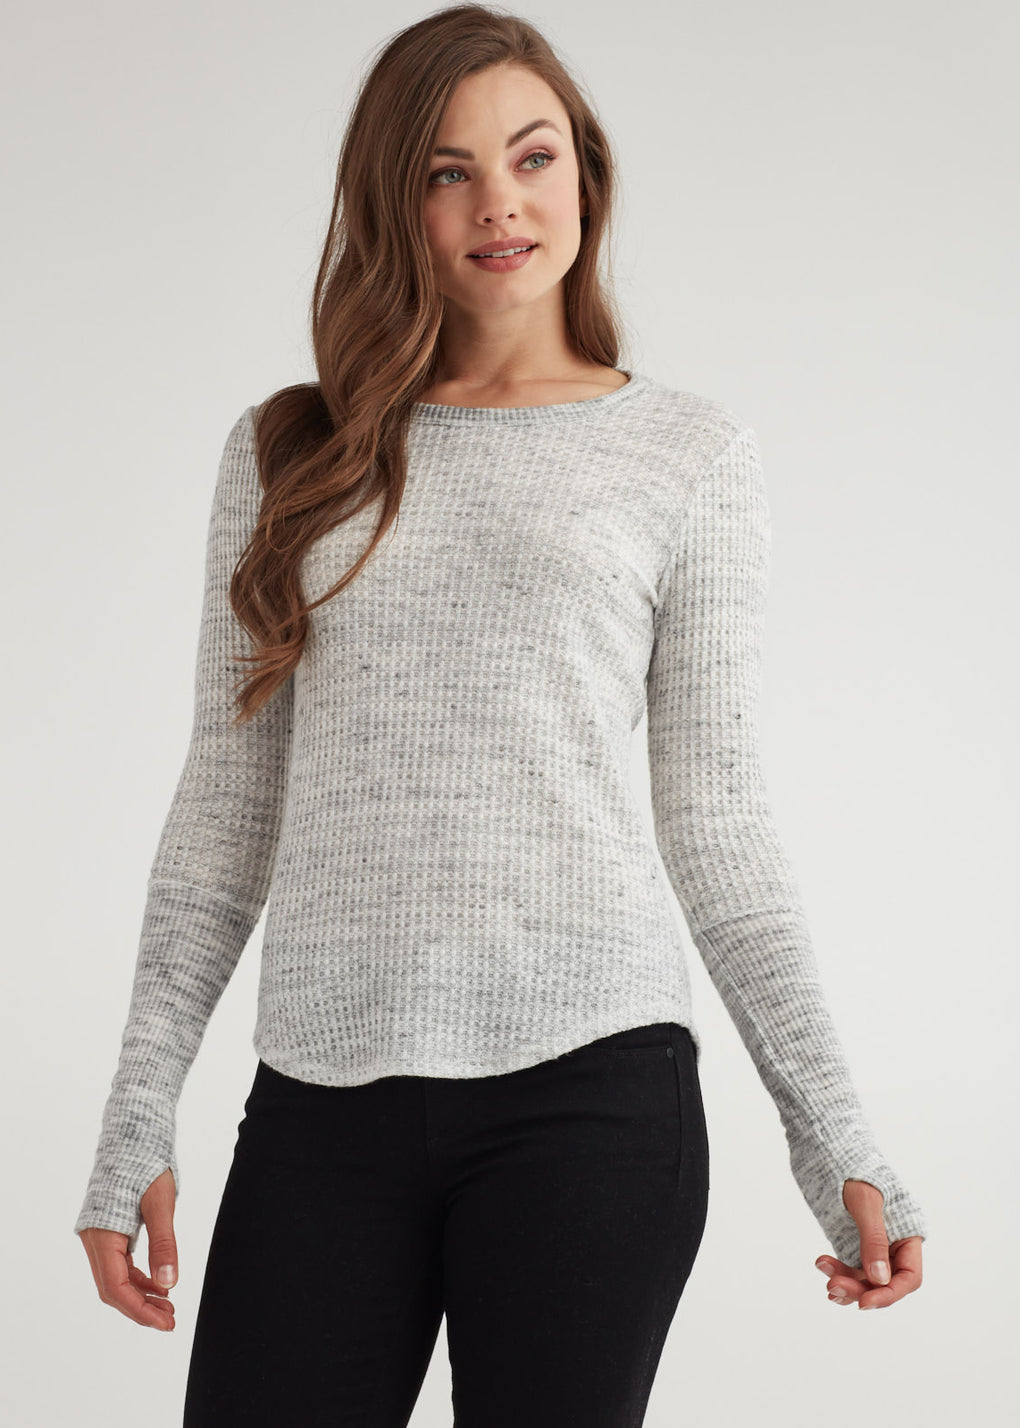 SHIRTTAIL THUMBHOLE TOP